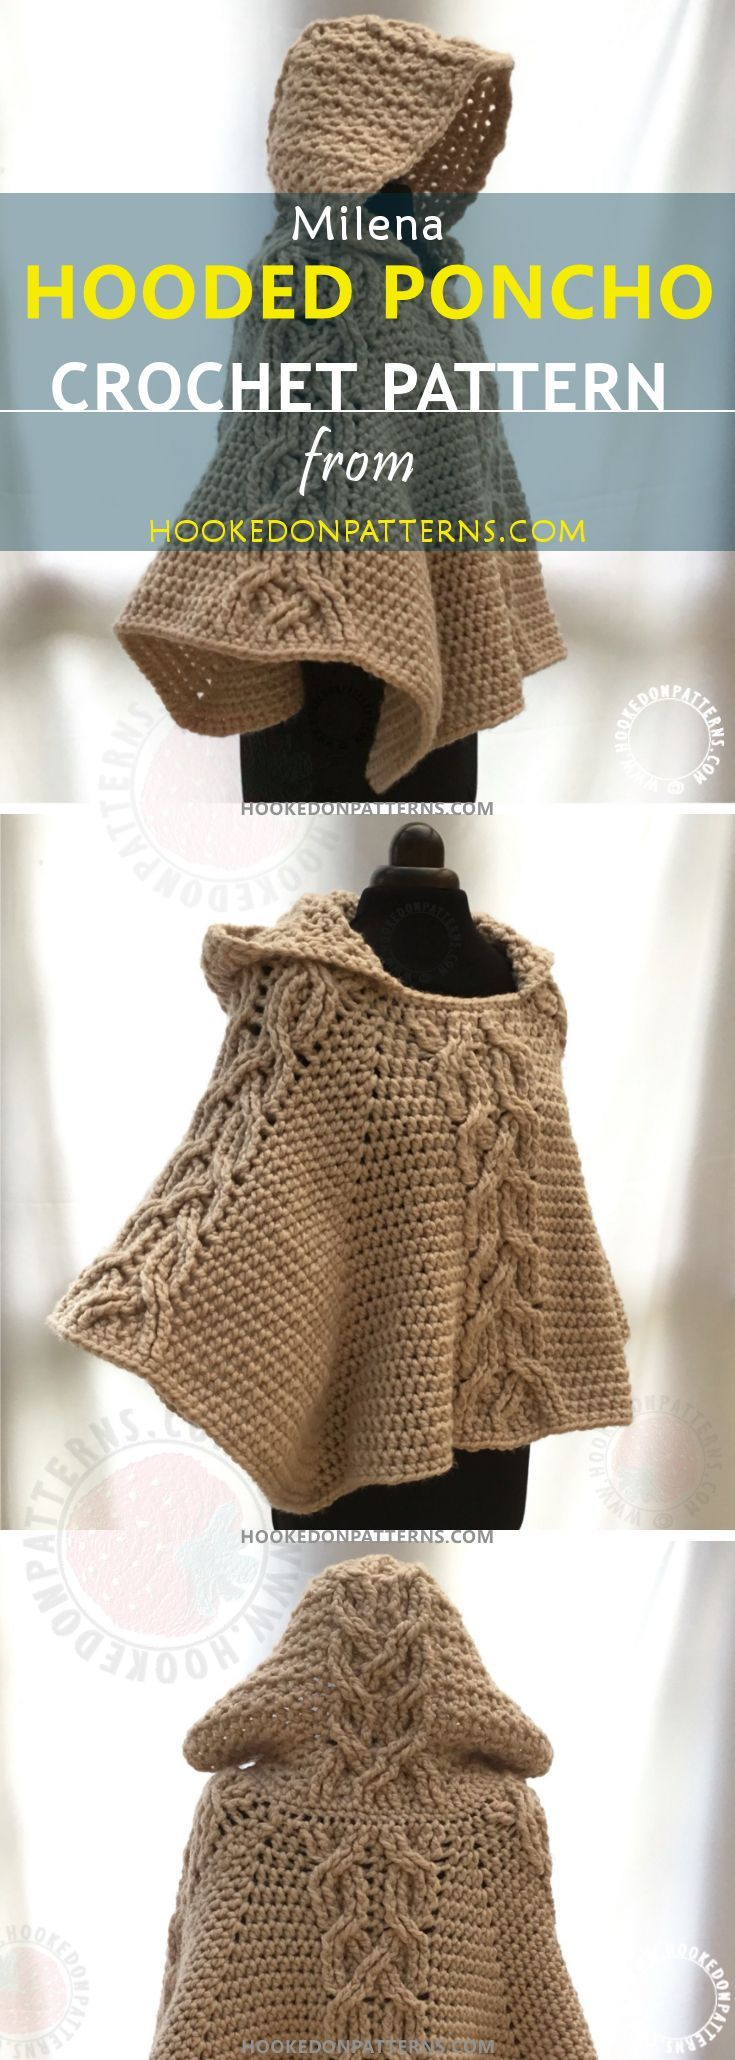 The 25 best hooded poncho pattern ideas on pinterest poncho for hooded poncho crochet pattern milena bankloansurffo Images